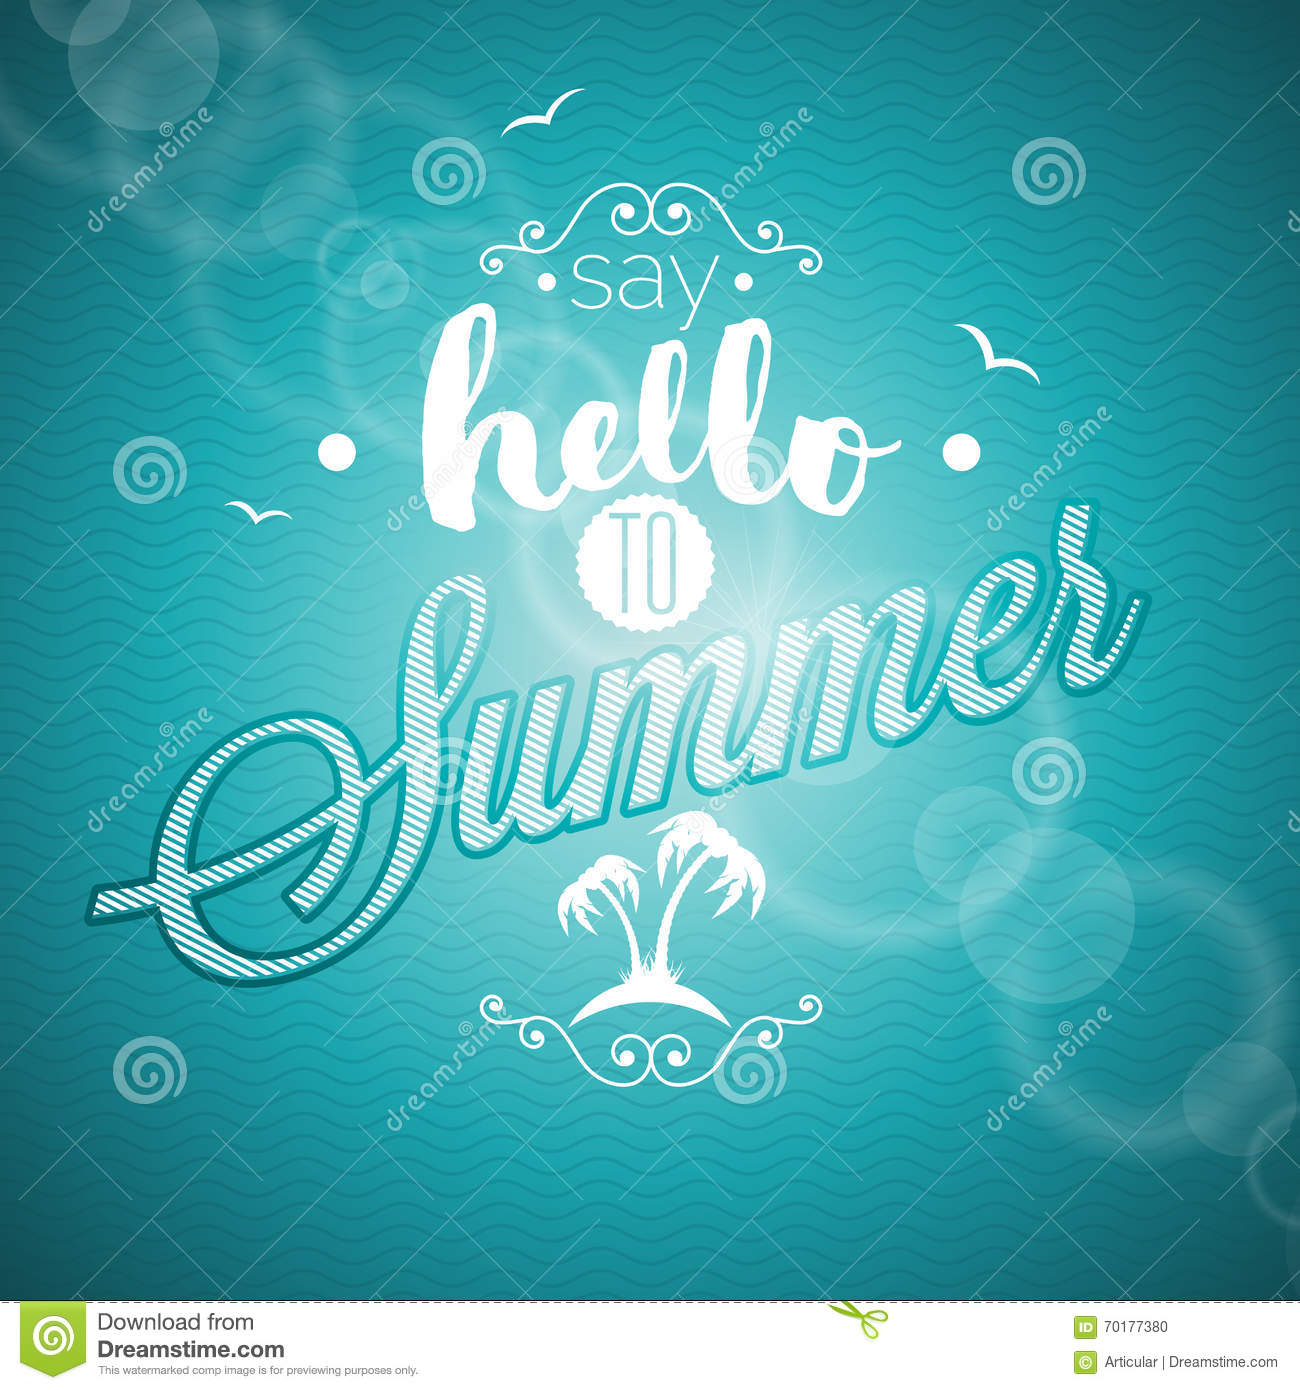 Say Hello To Summer Inspiration Quote On Blue Background. Vector Typography  Design Element For Greeting Cards